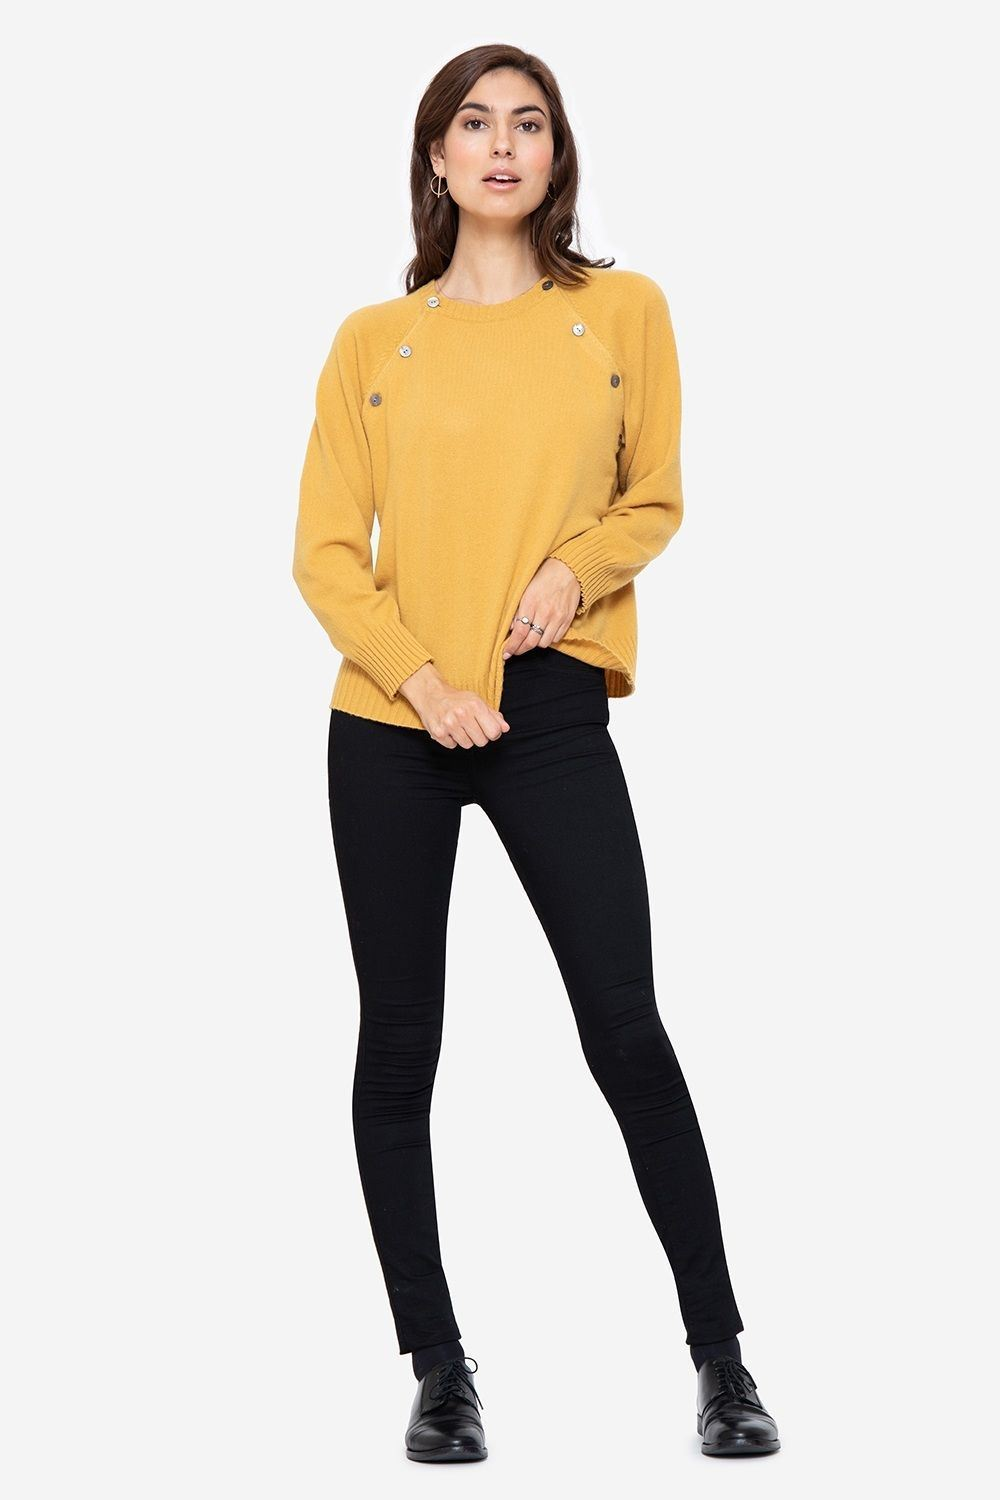 Soft cashmere nursing jumper in yellow with buttons, full figur